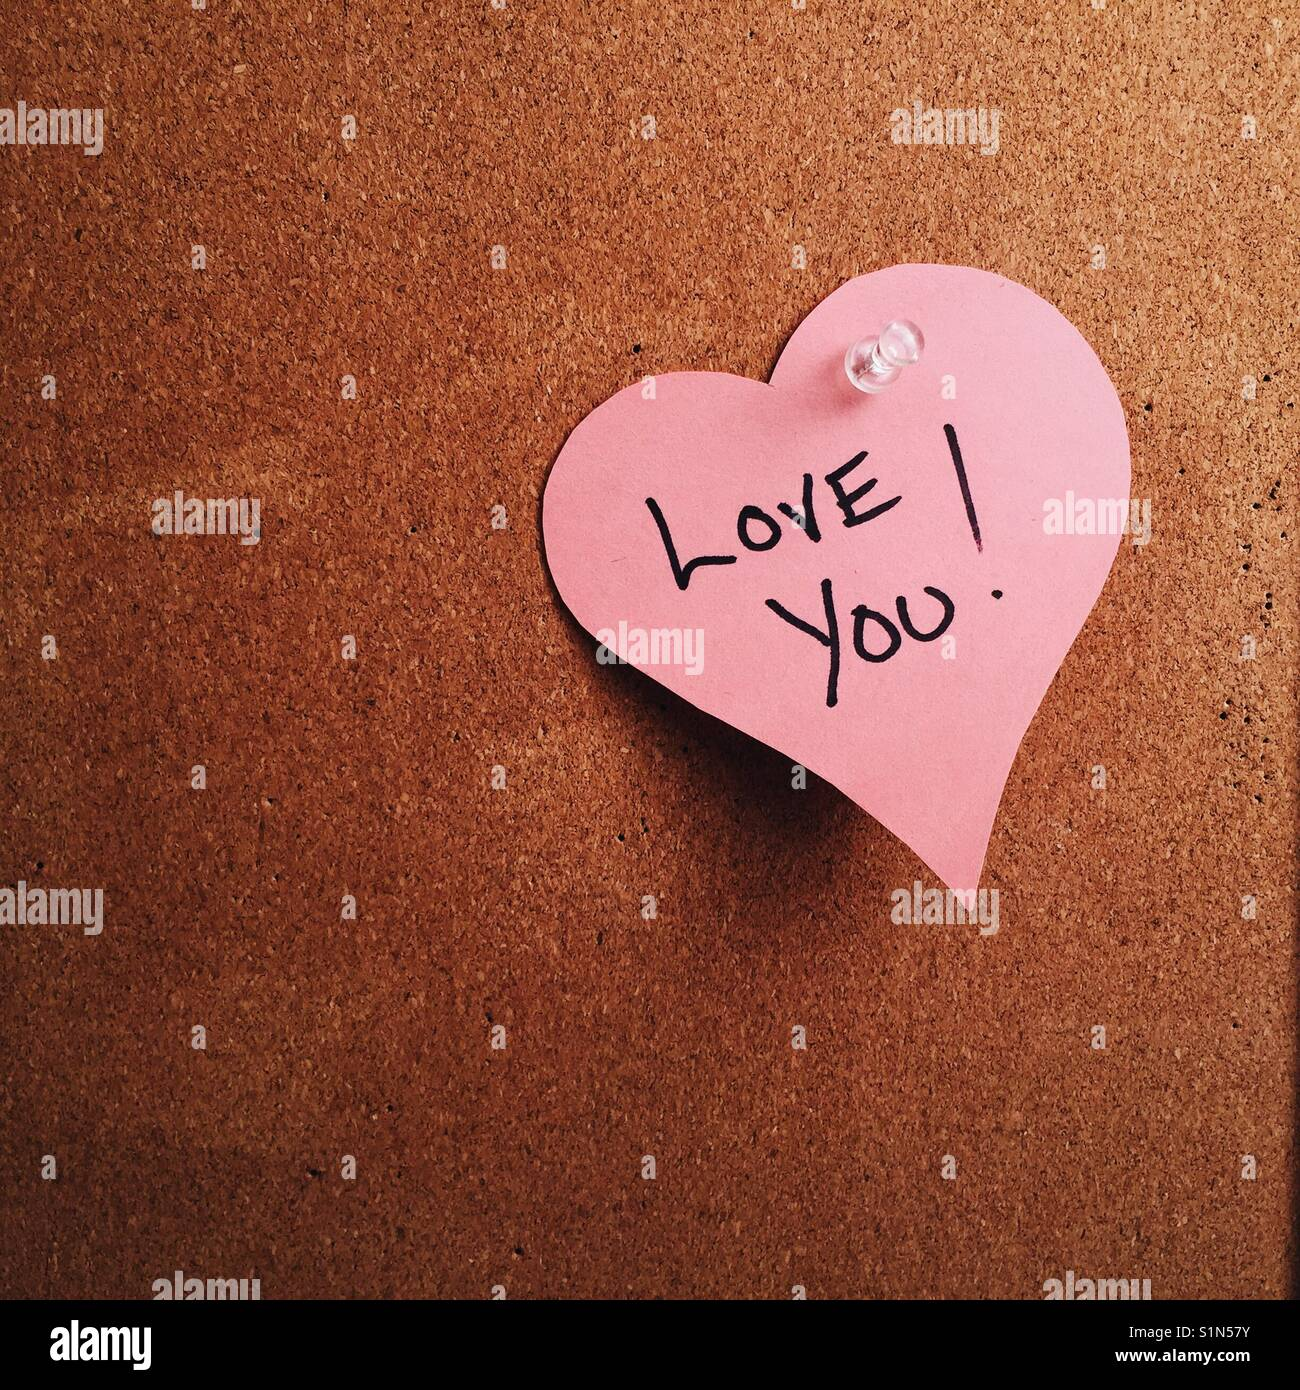 A Heart Shaped Note With The Words I Love You Written On It Pinned To A Cork Board